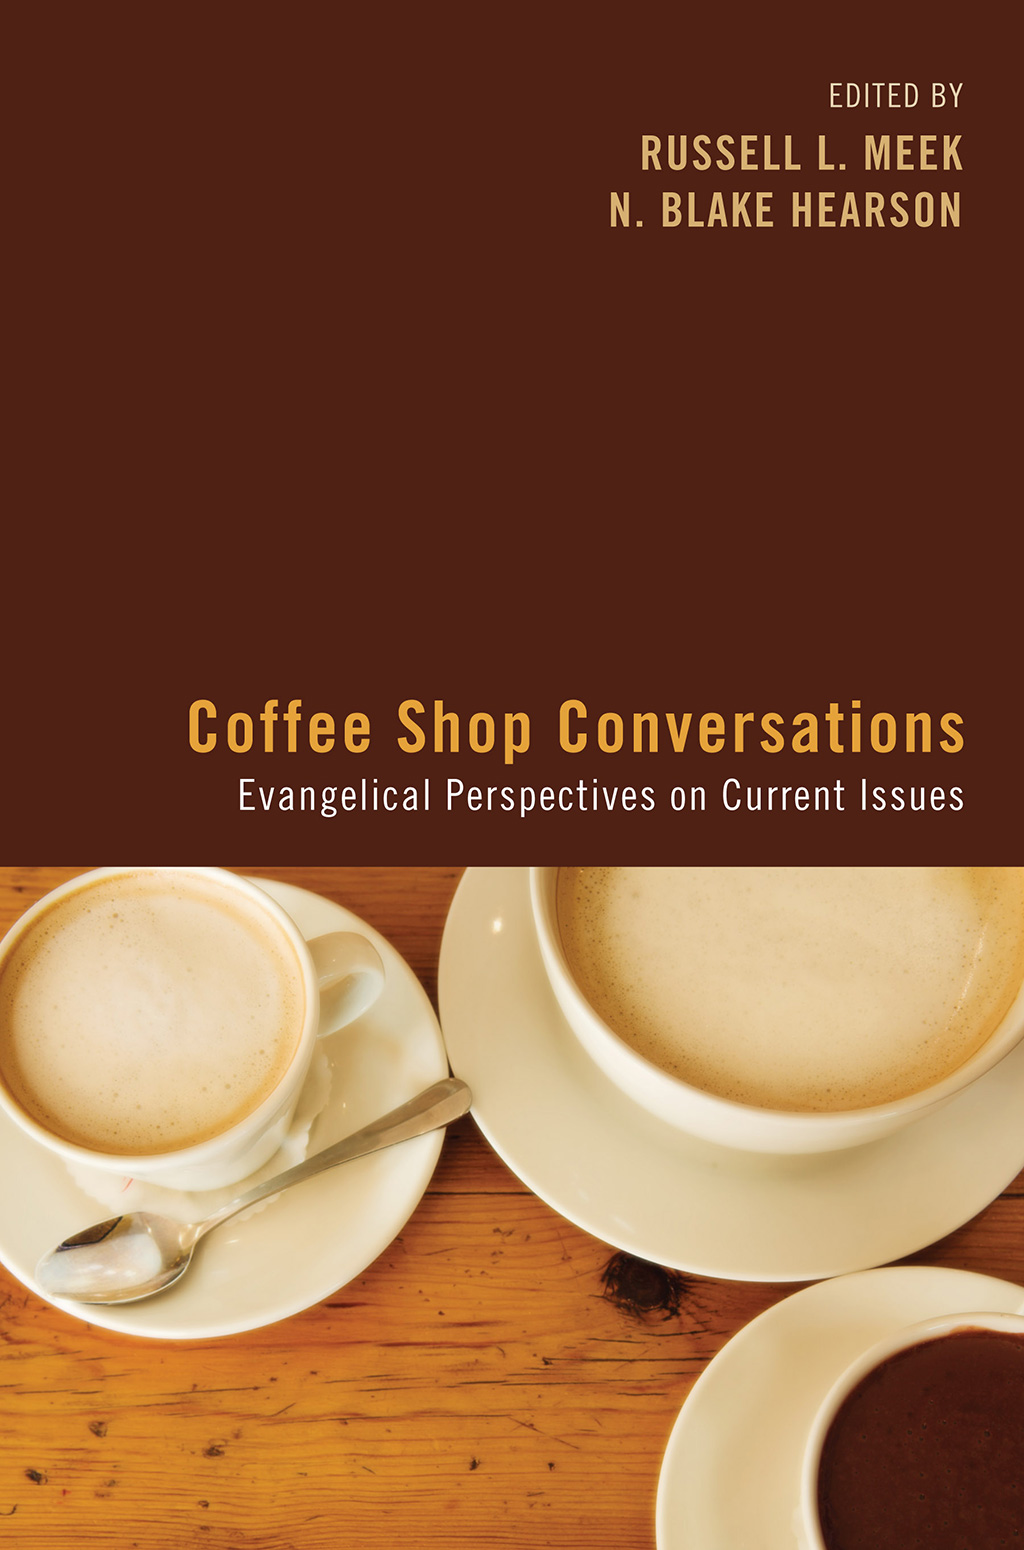 Book cover of Coffee Shop Conversations